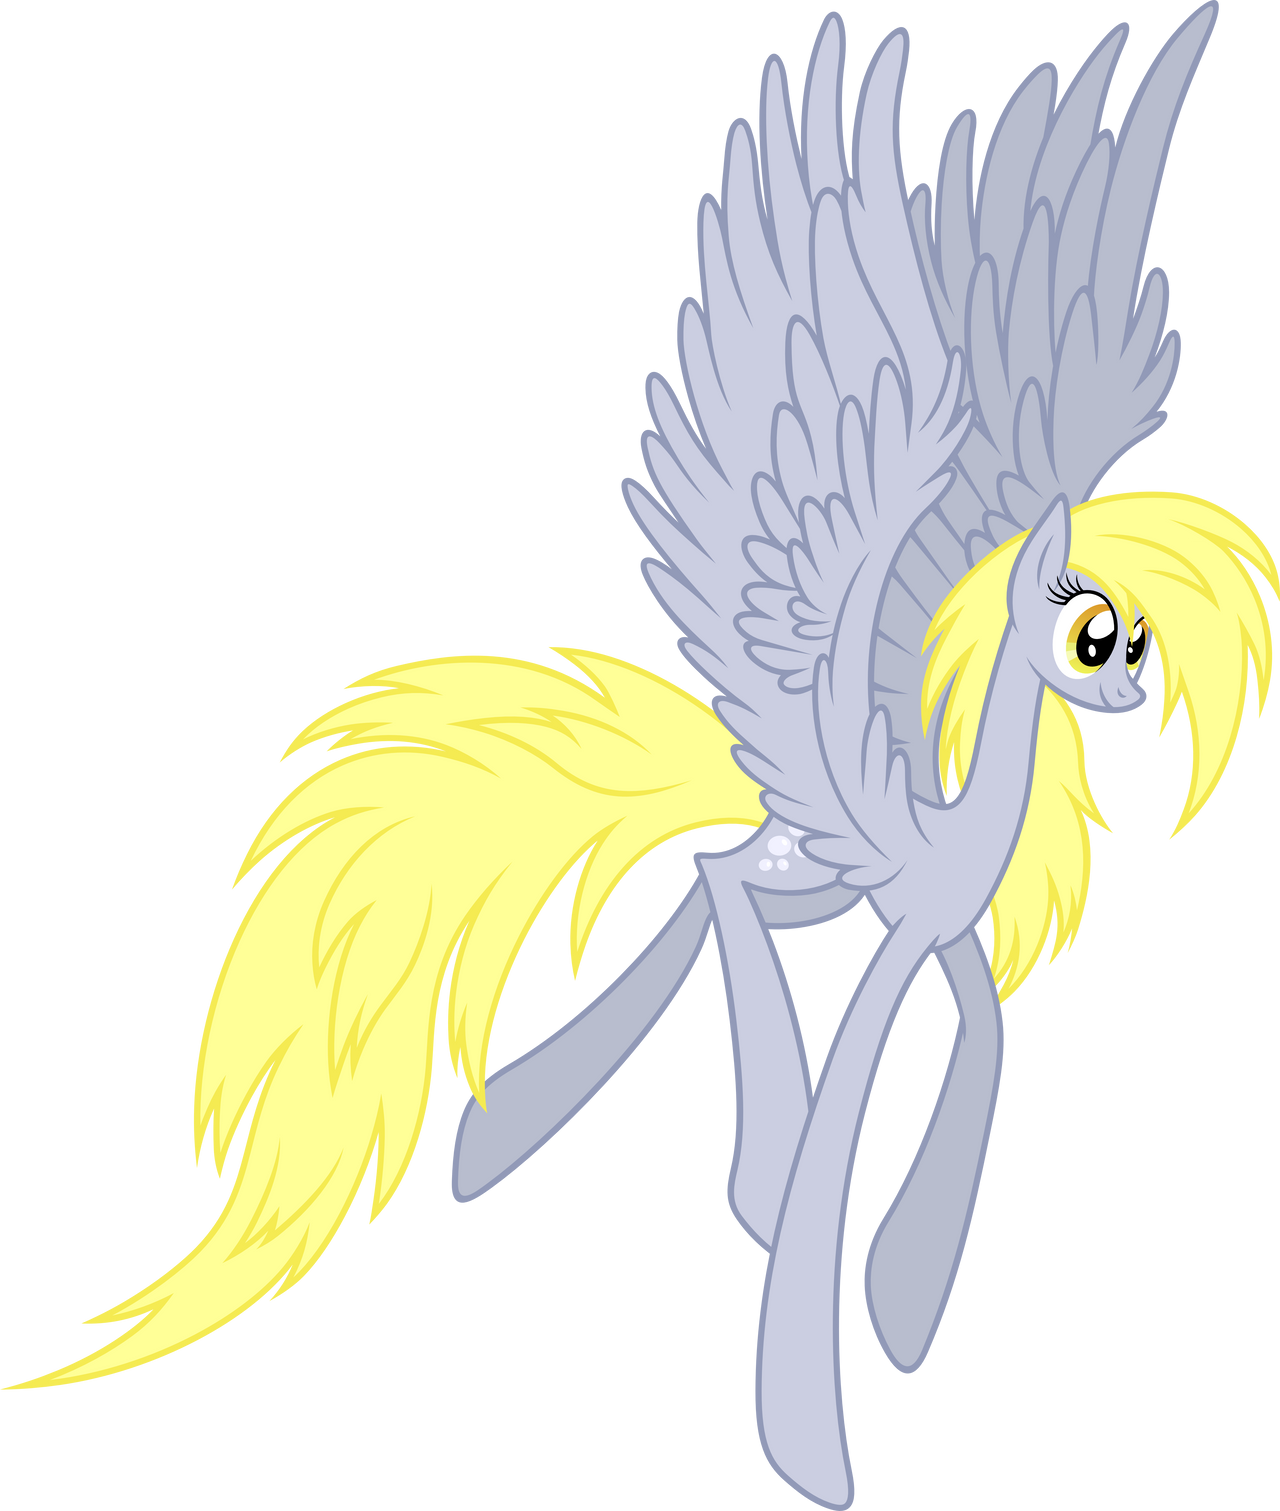 Derpy flying by Stabzor